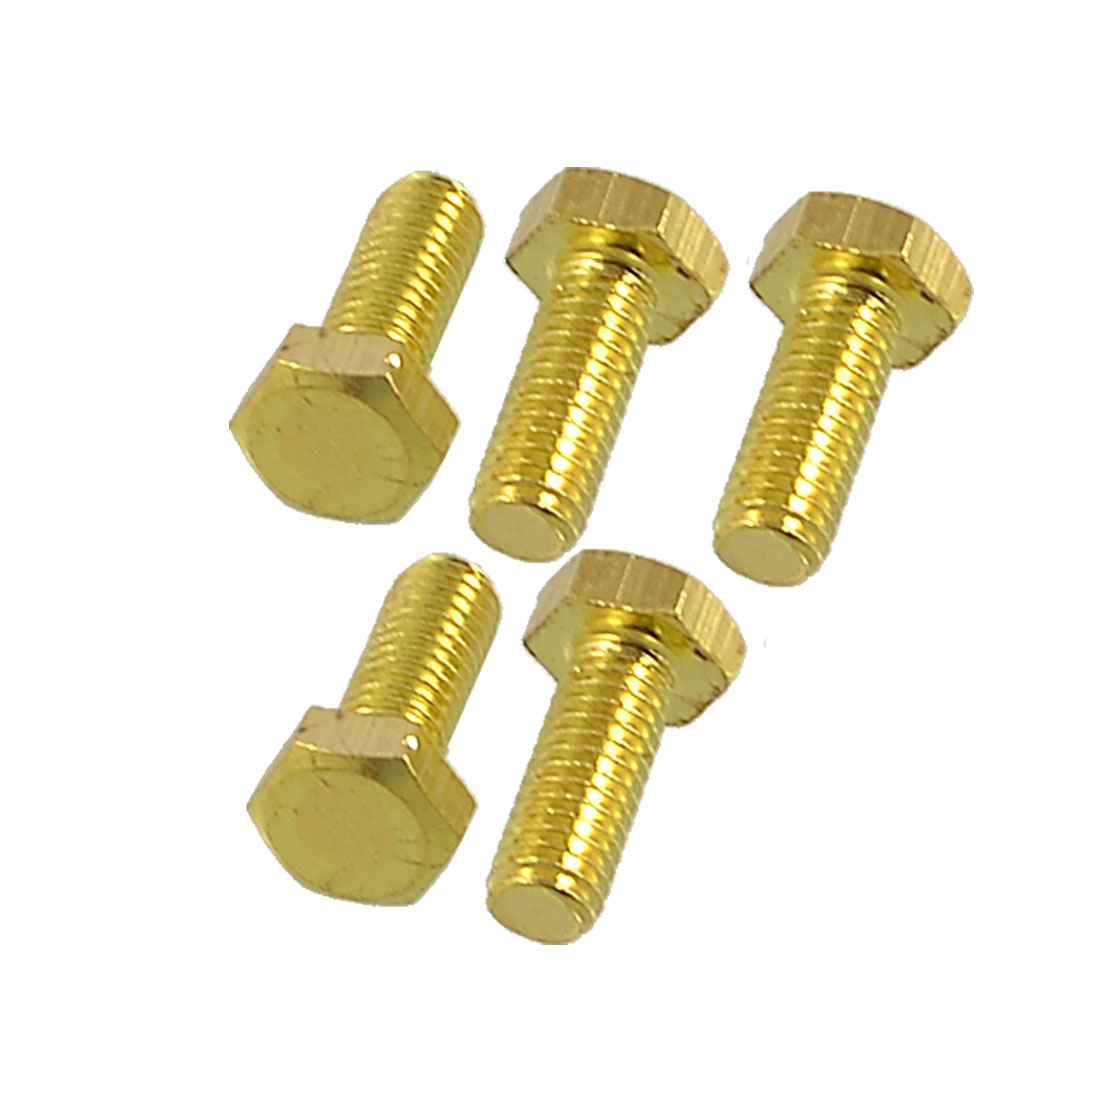 5 Pcs 6mm x 15mm Thread Hex Head Flat Tip Screws Solid Brass Fasteners